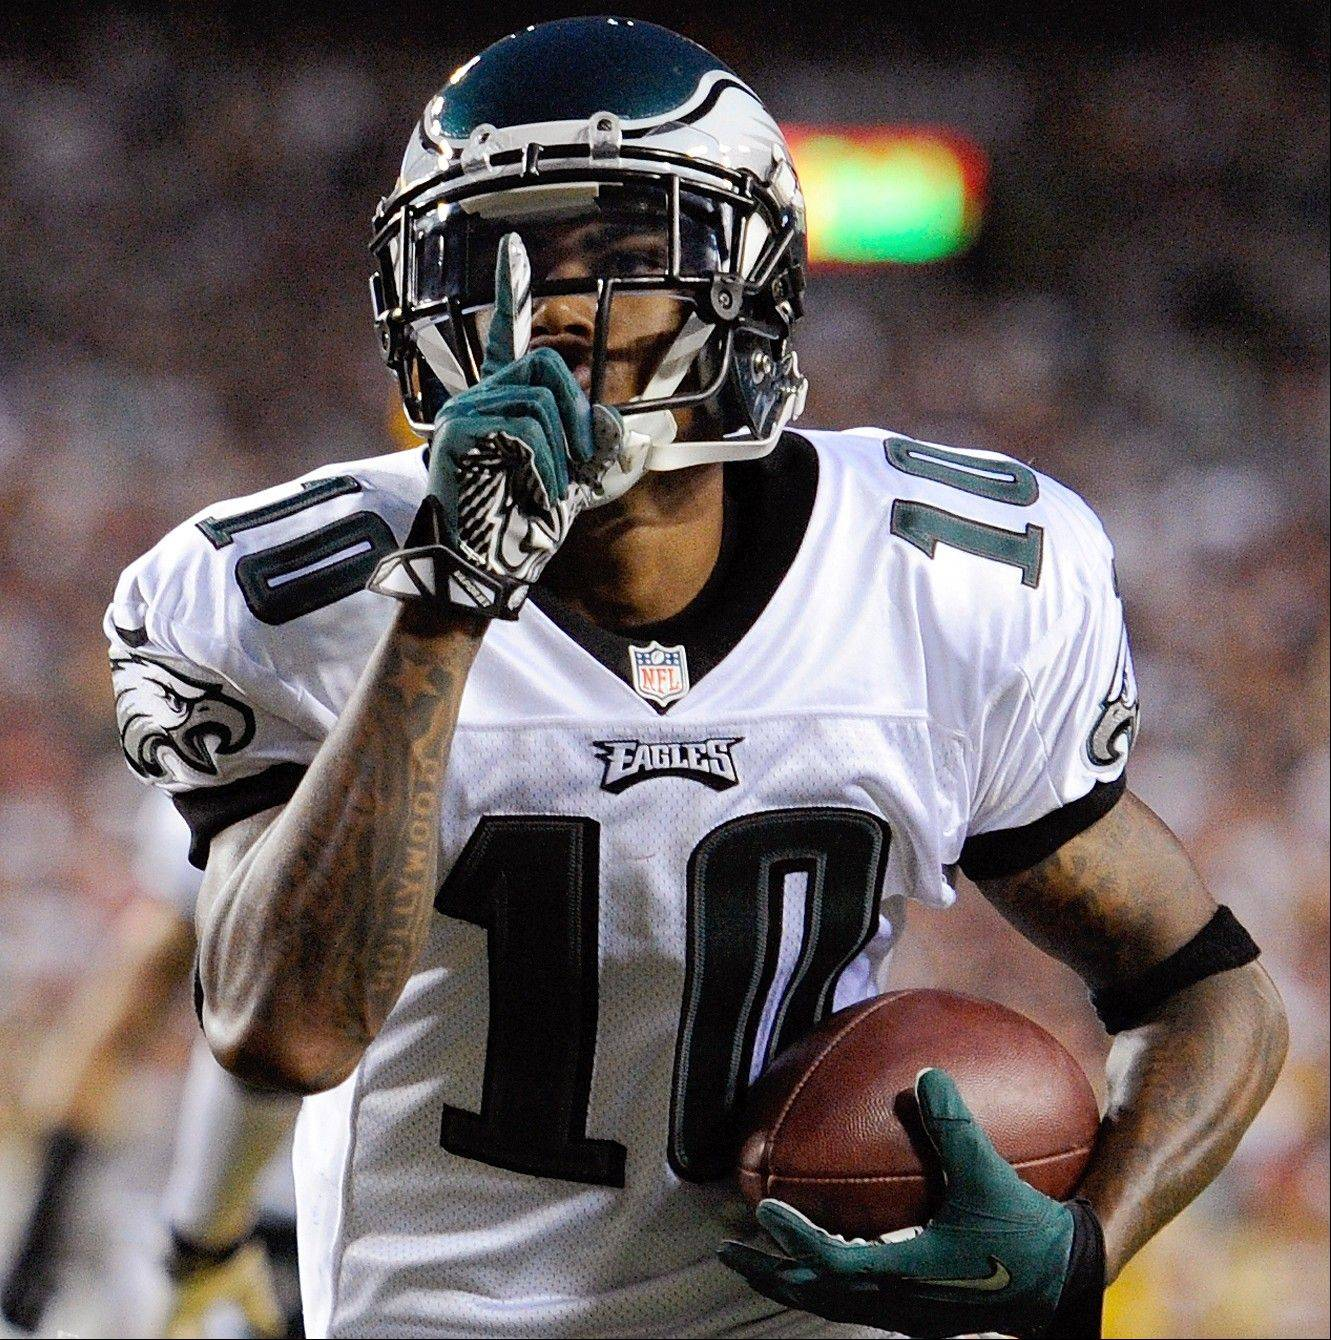 Philadelphia Eagles wide receiver DeSean Jackson celebrates his touchdown during the first half Monday against the Washington Redskins in Landover, Md.